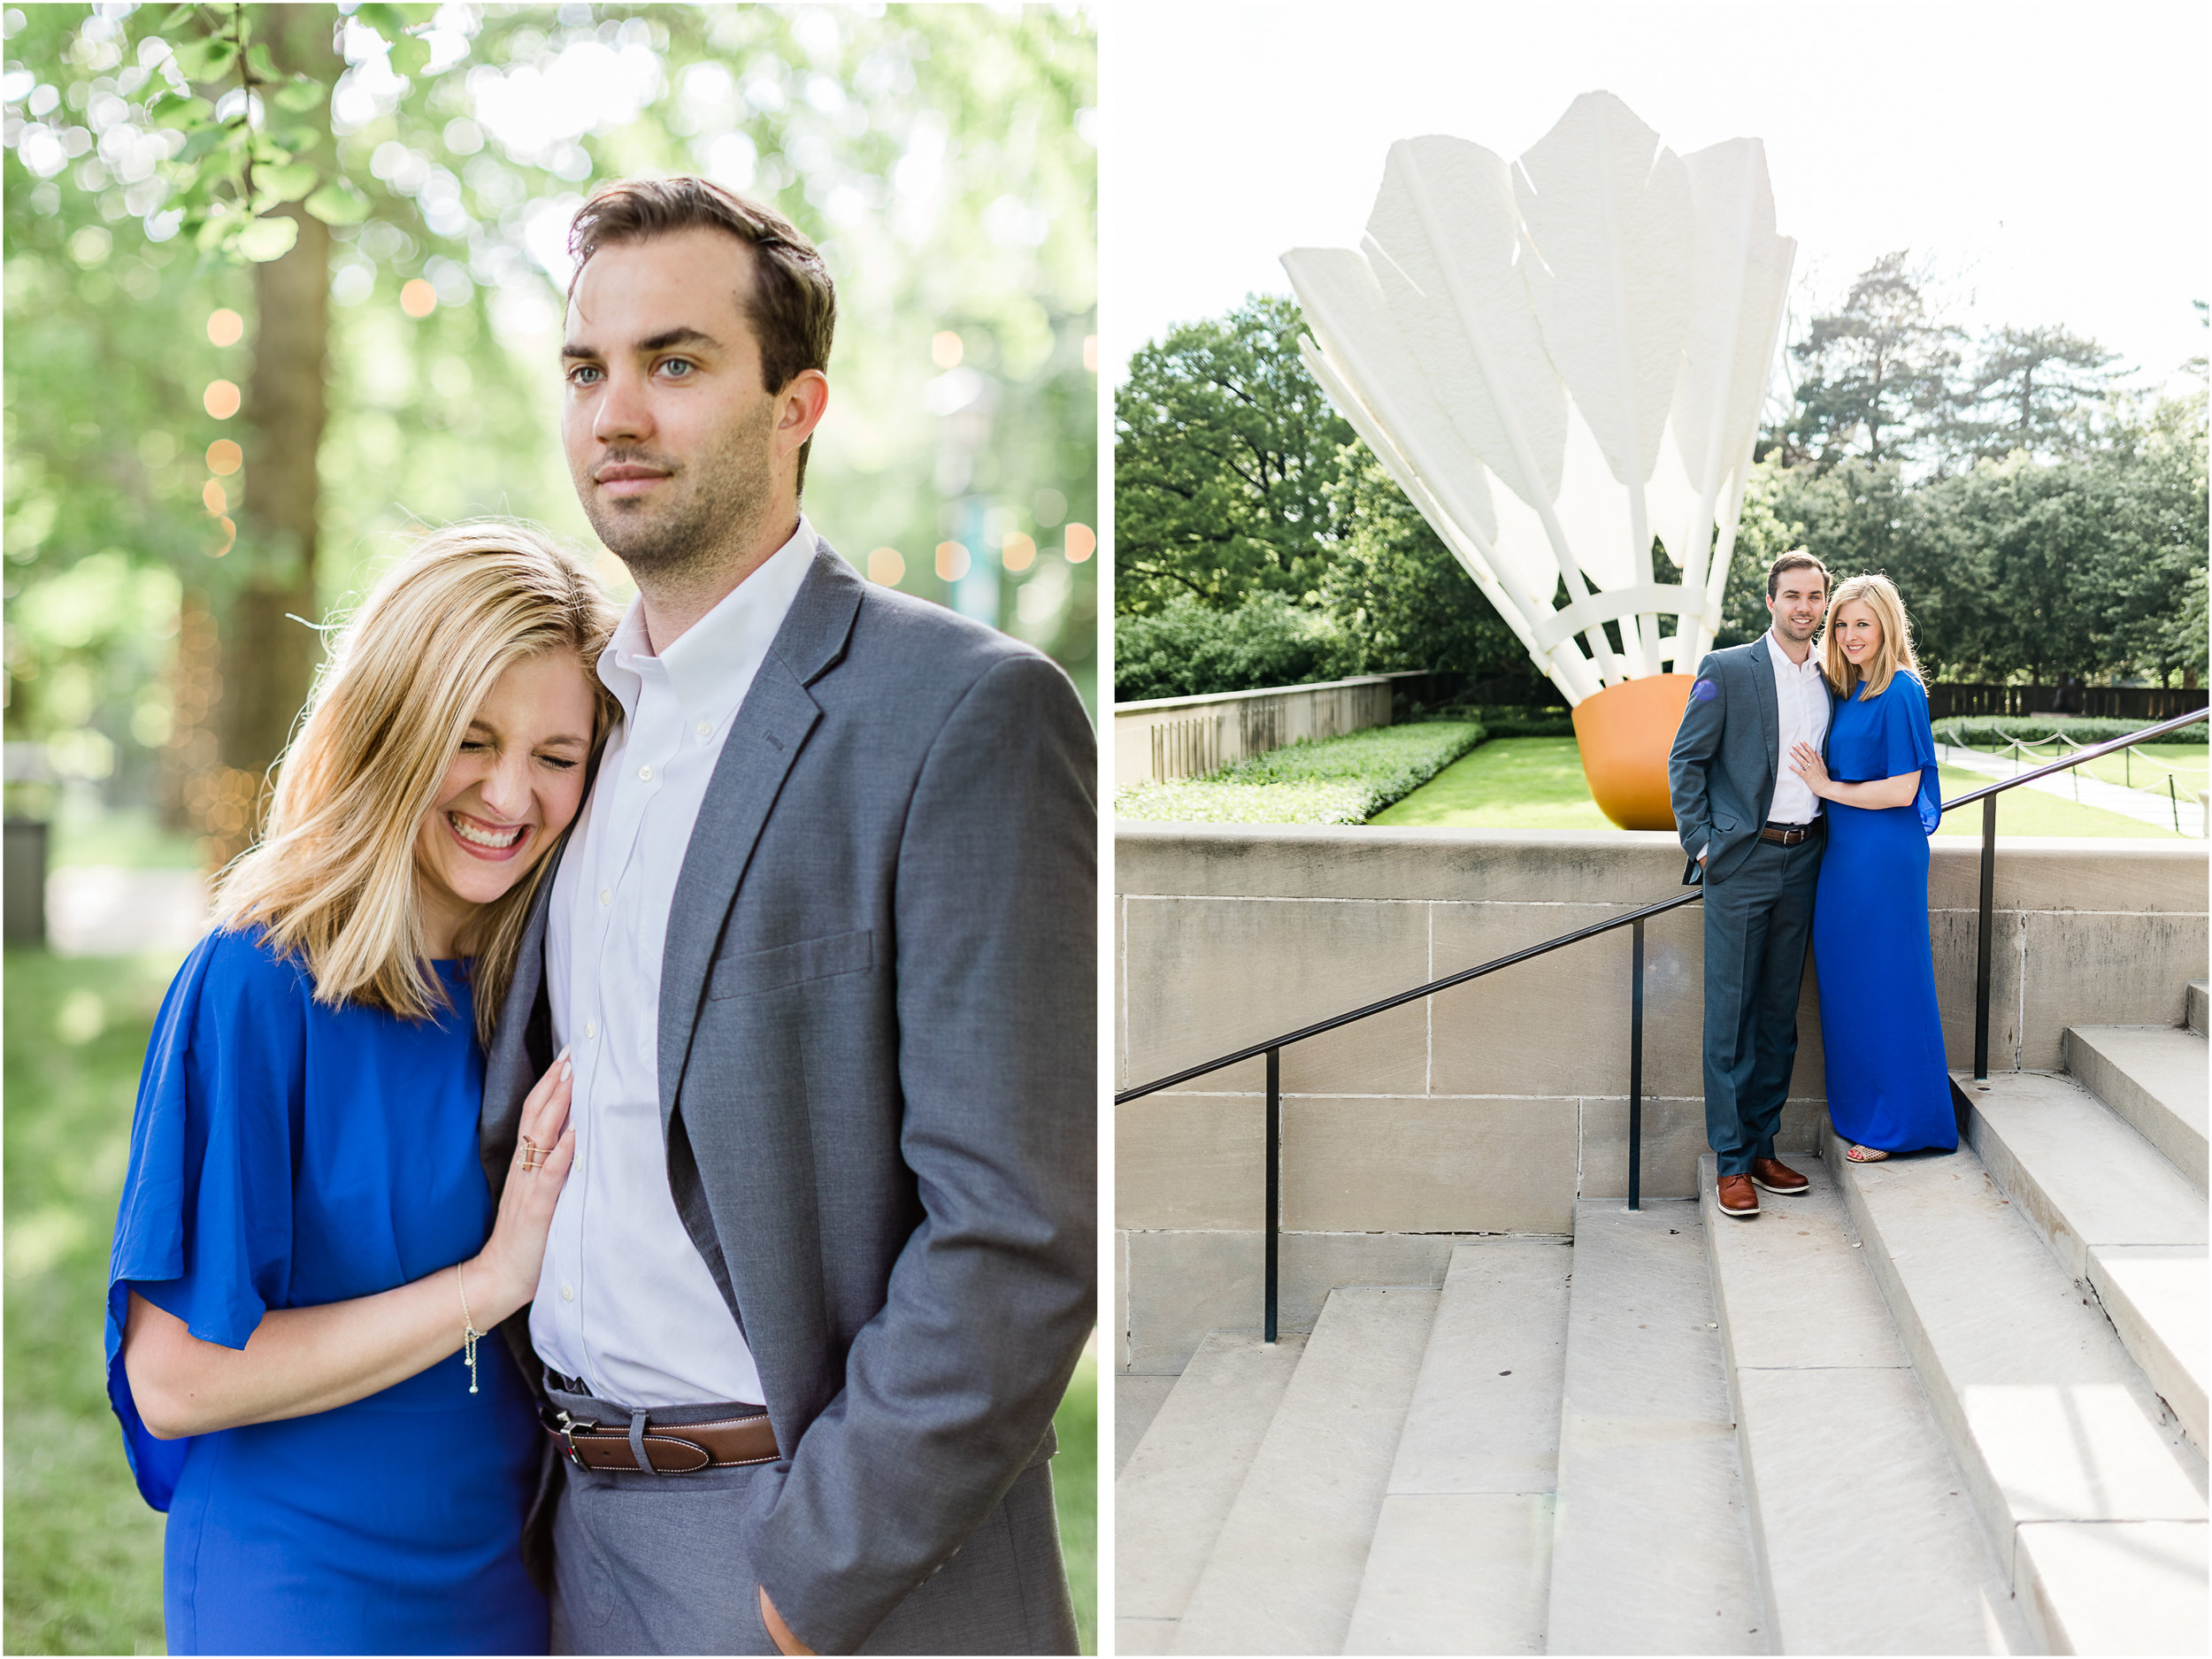 nelson atkins kc engagement photos 11.jpg